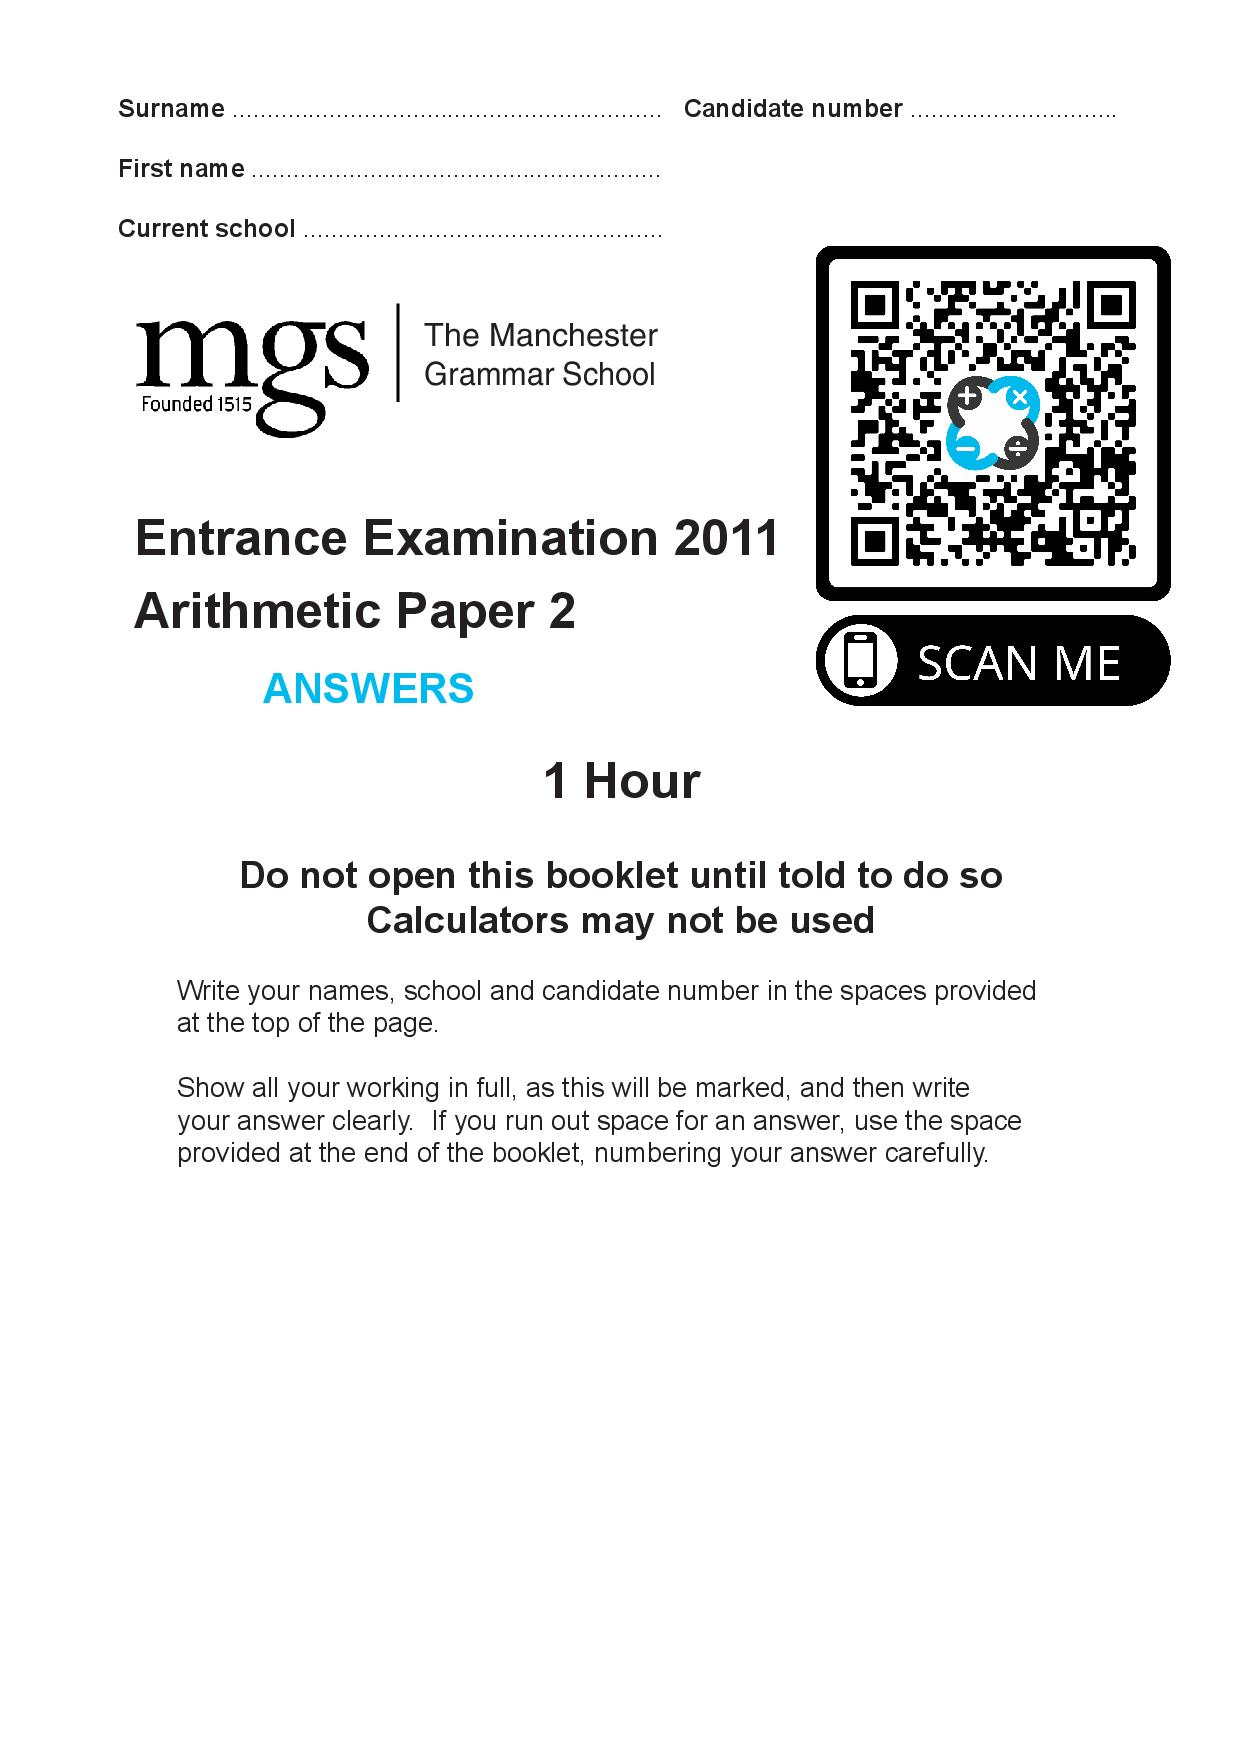 The Manchester Grammar School Entrance Examination 2011 Arithmetic Paper 2 Answer Paper page 001